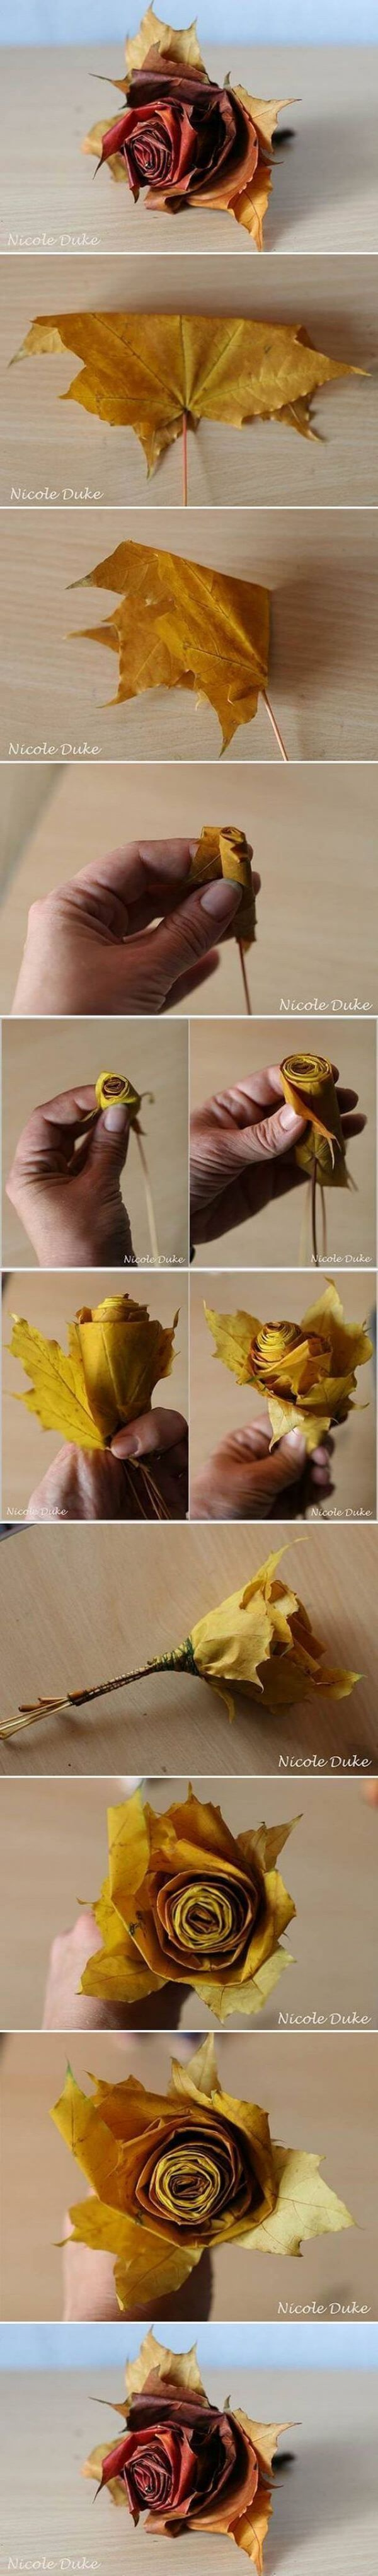 Rolled Paper Rose Update with Fall Foliage